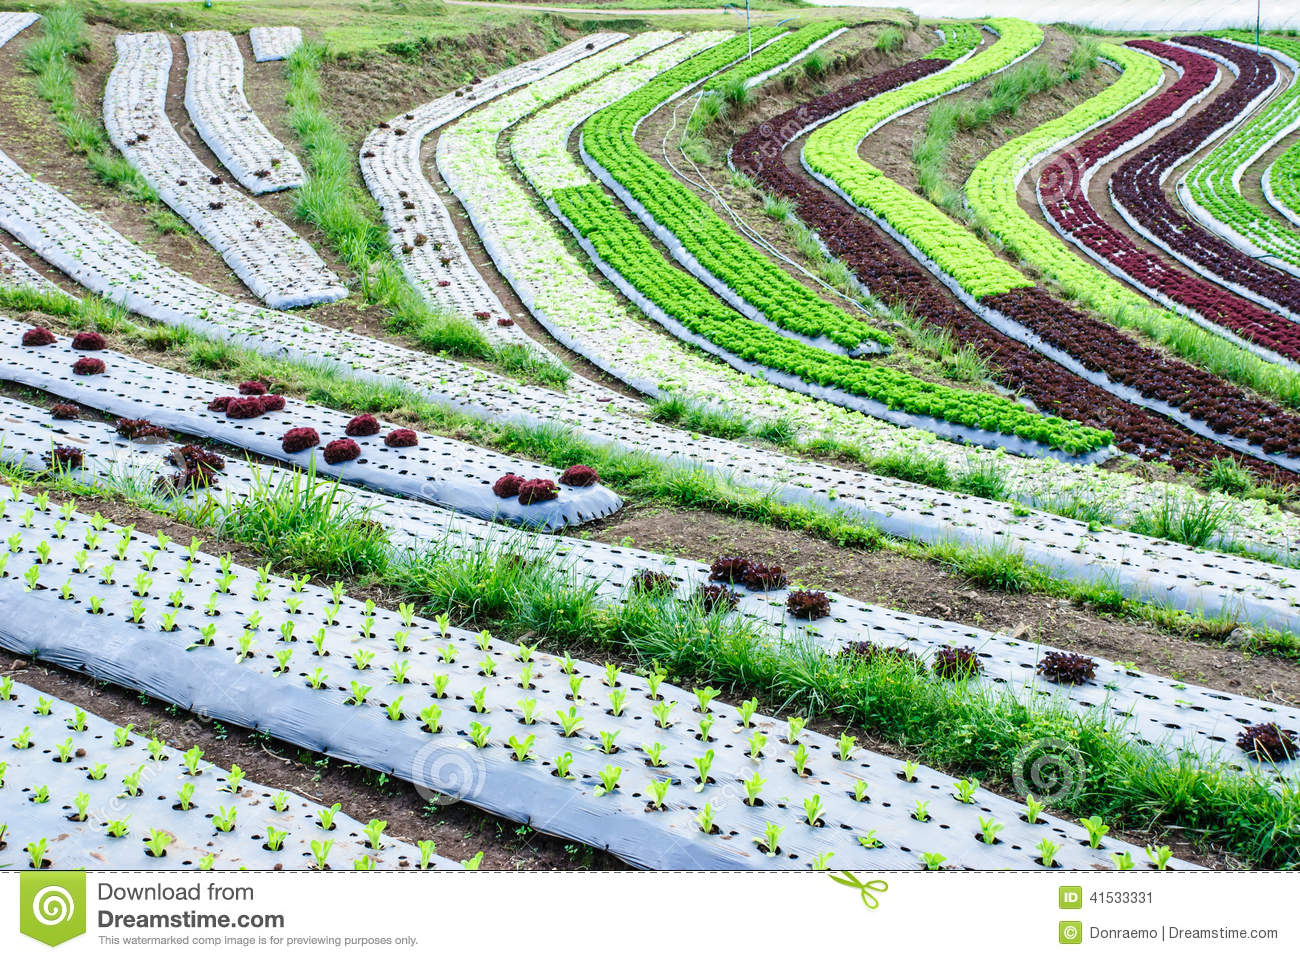 Terrace farming stock image image of hills agriculture for Terrace farming model